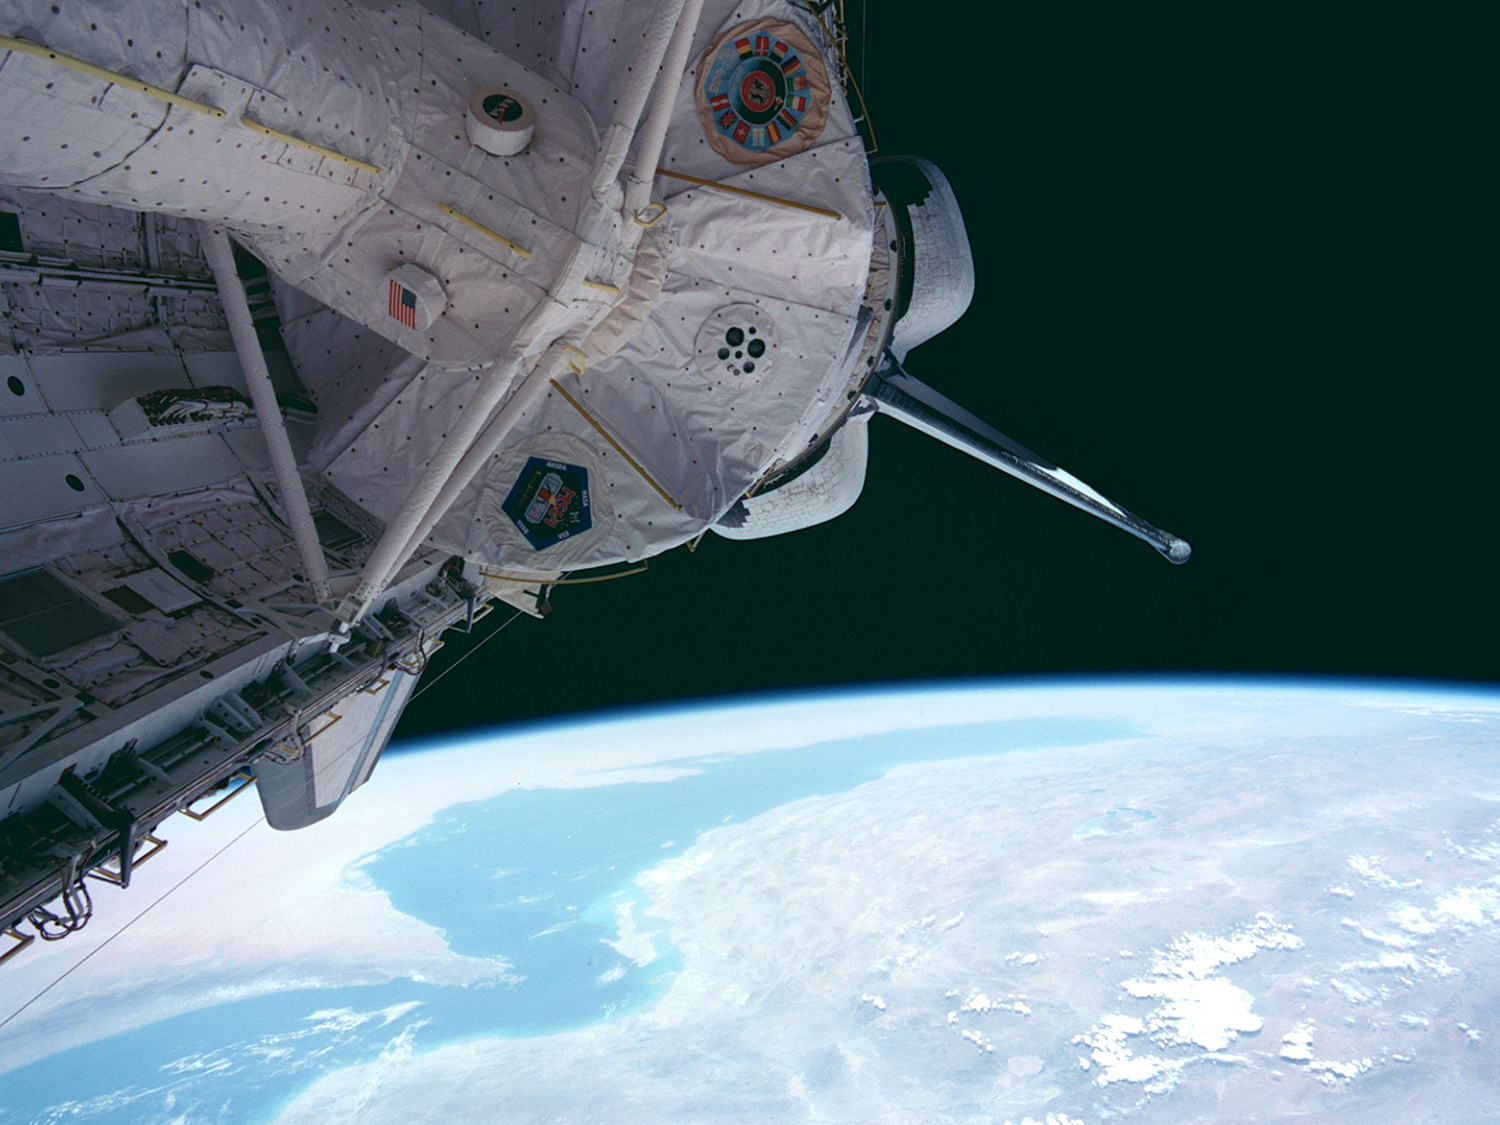 Columbia with Spacelab module in payload bay over the Straights of Hormuz.